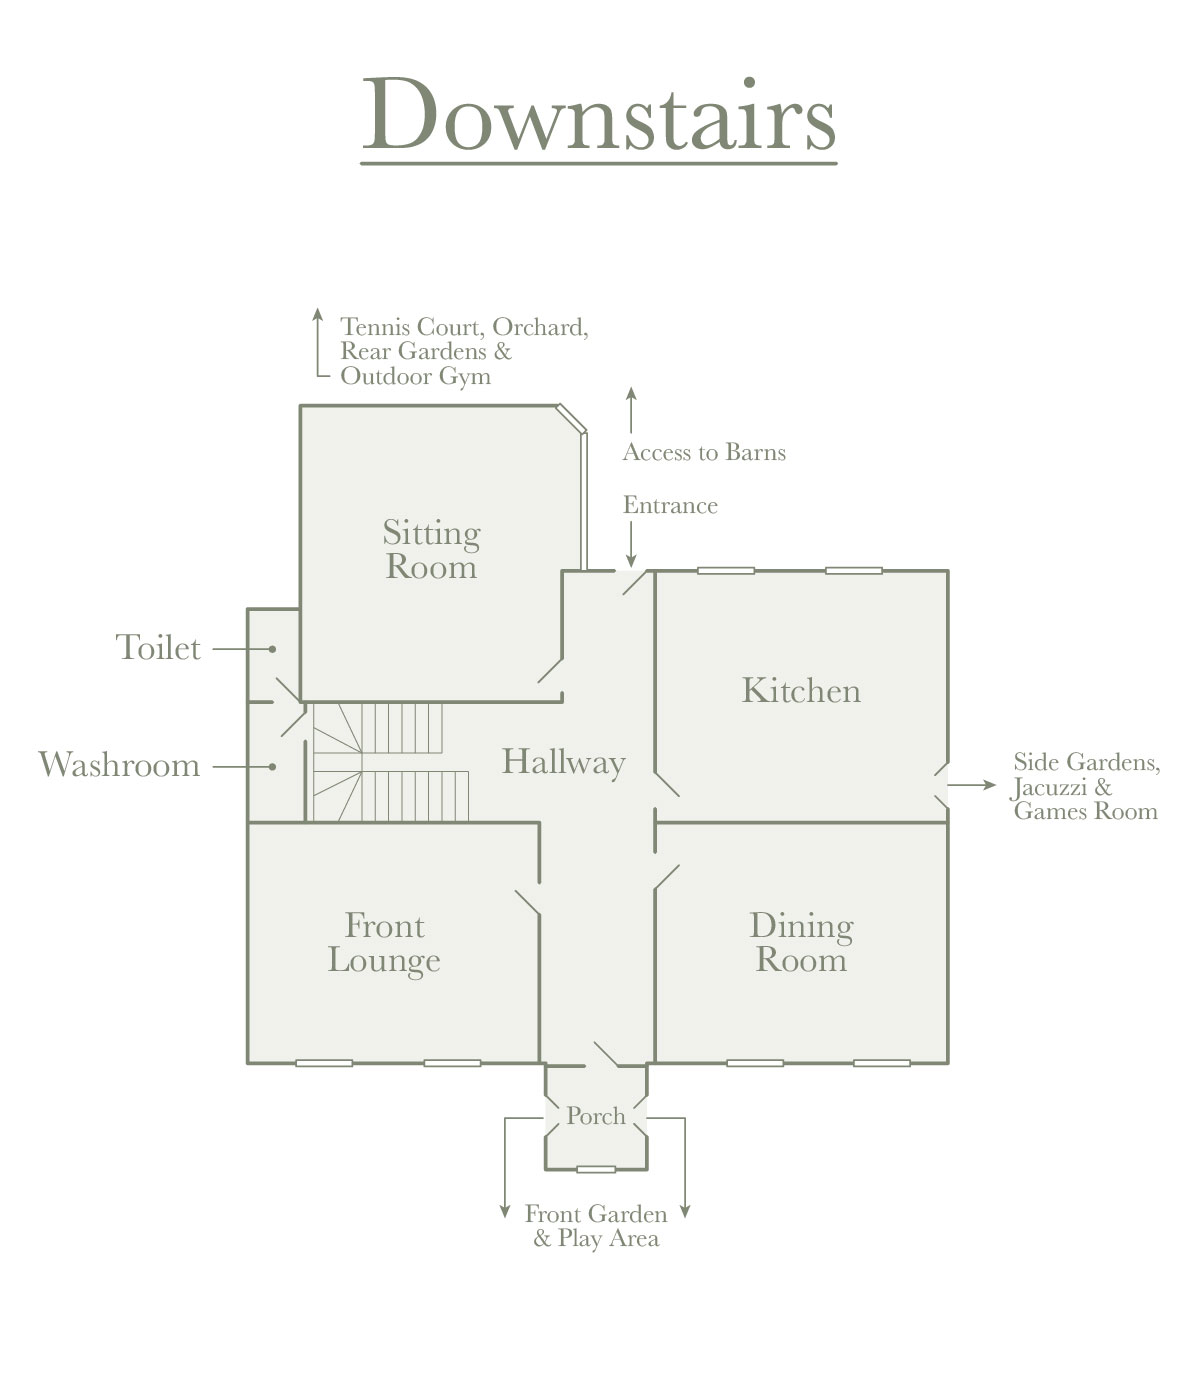 Downstairs Room Plan